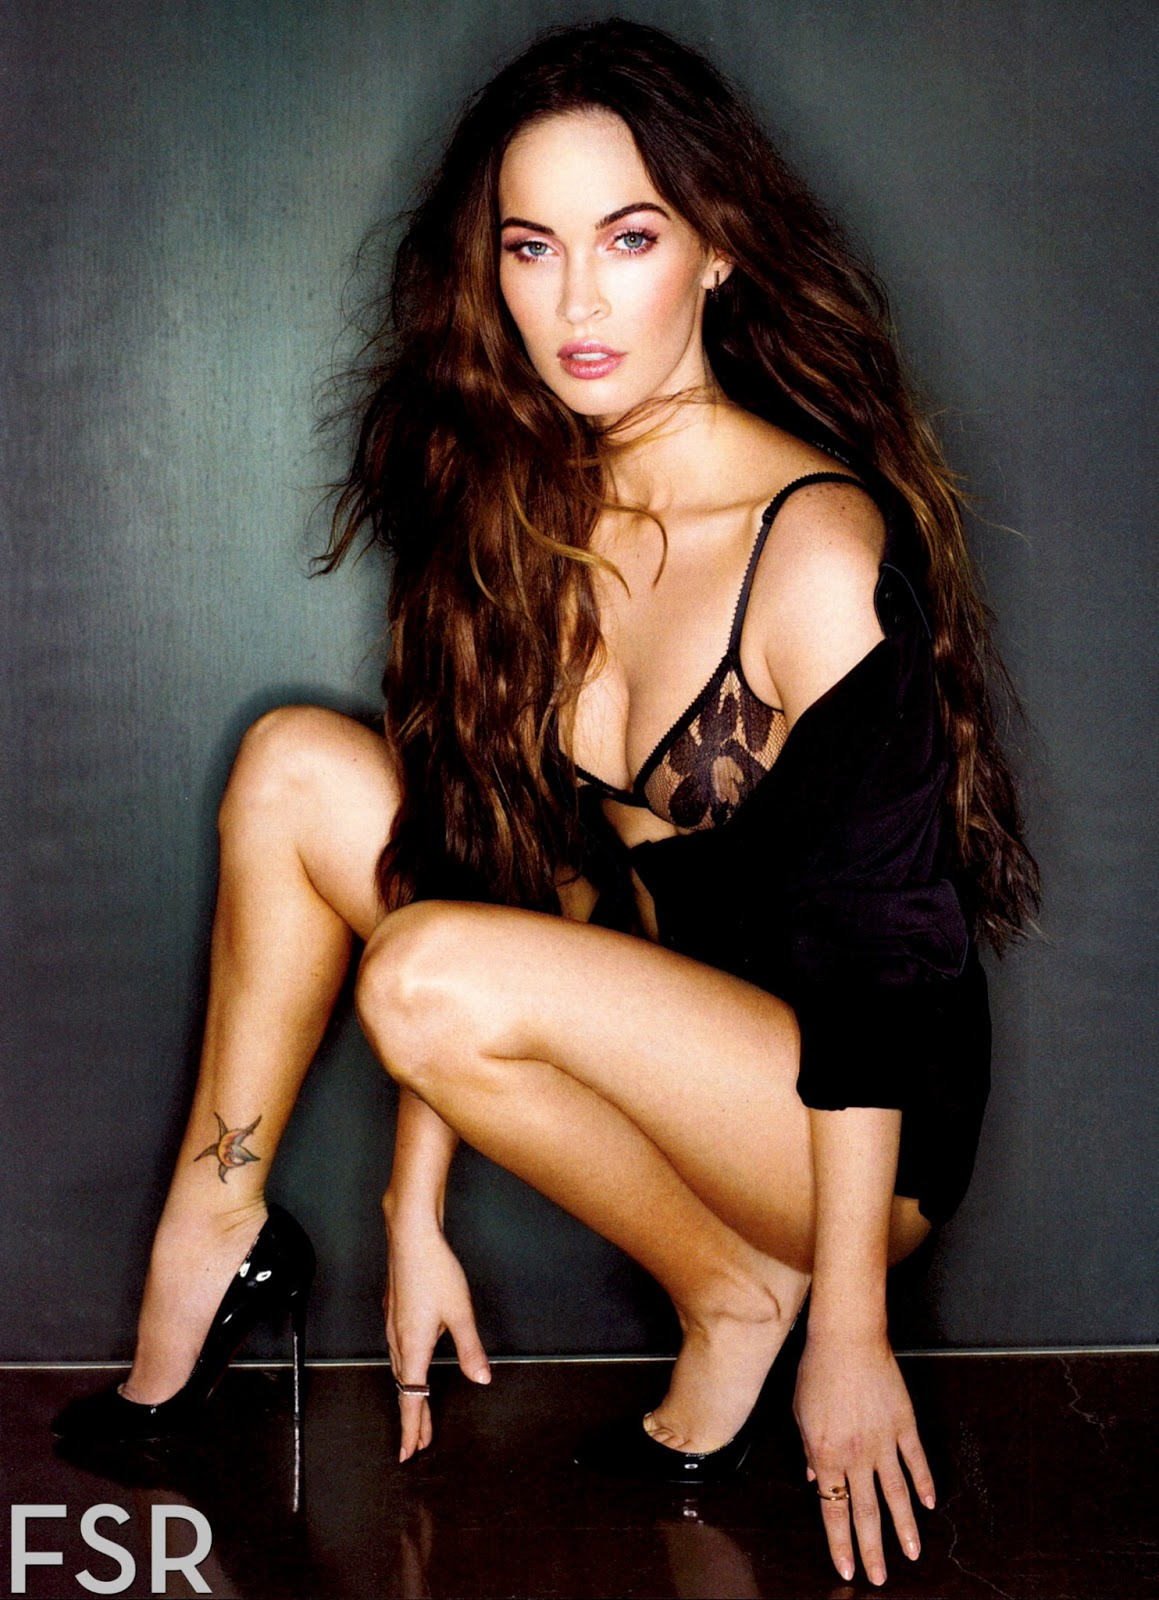 Who is the most sexy in the world